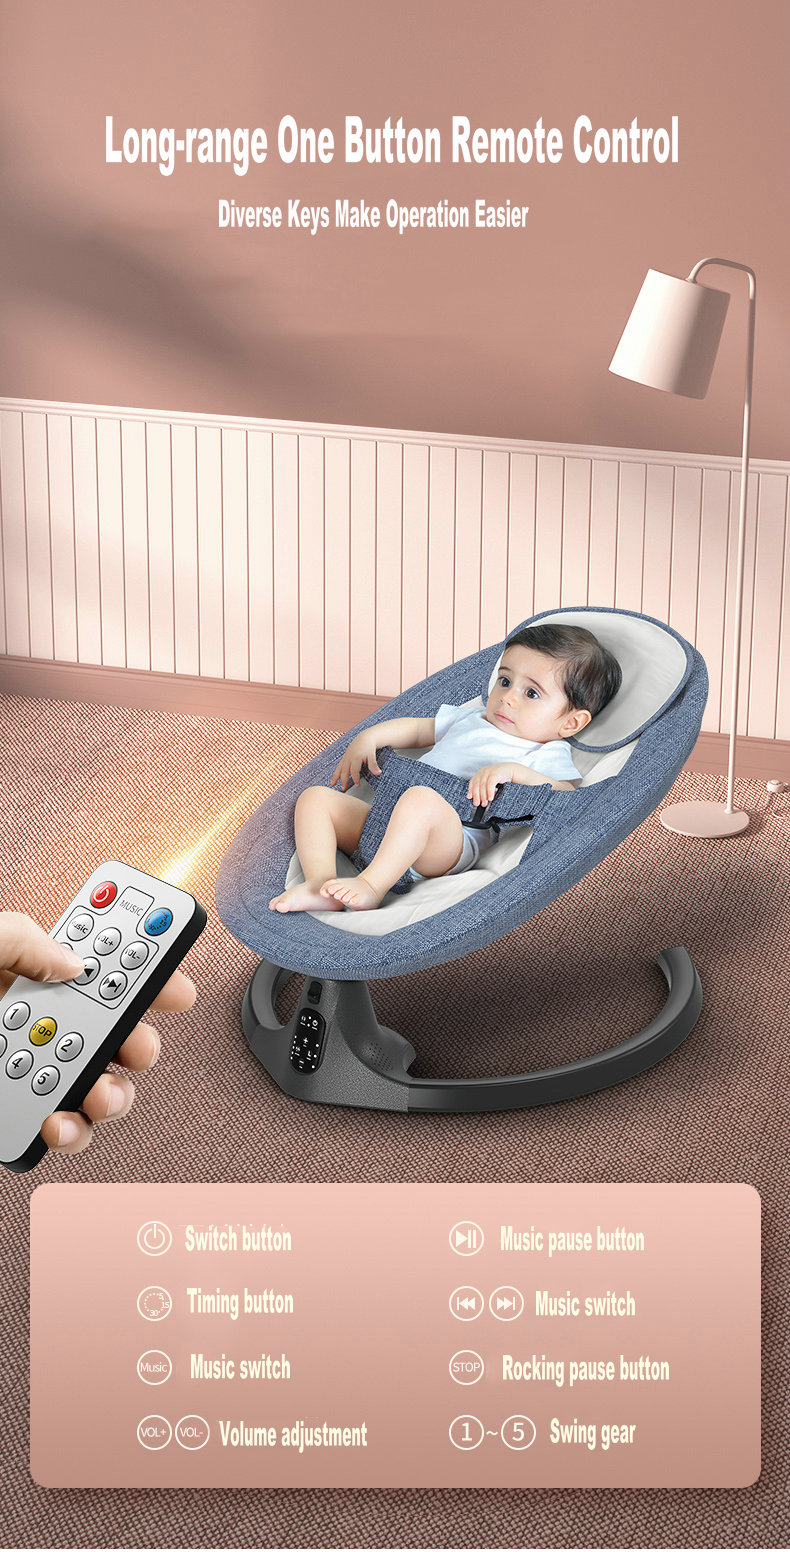 H6b329dfb572447ecb95fda39cd7fd6d2M Baby Swing Multifunctional Aluminum Alloy Baby Rocking Chair Electric Baby Cradle With Remote Control Cradle Rocking Chair